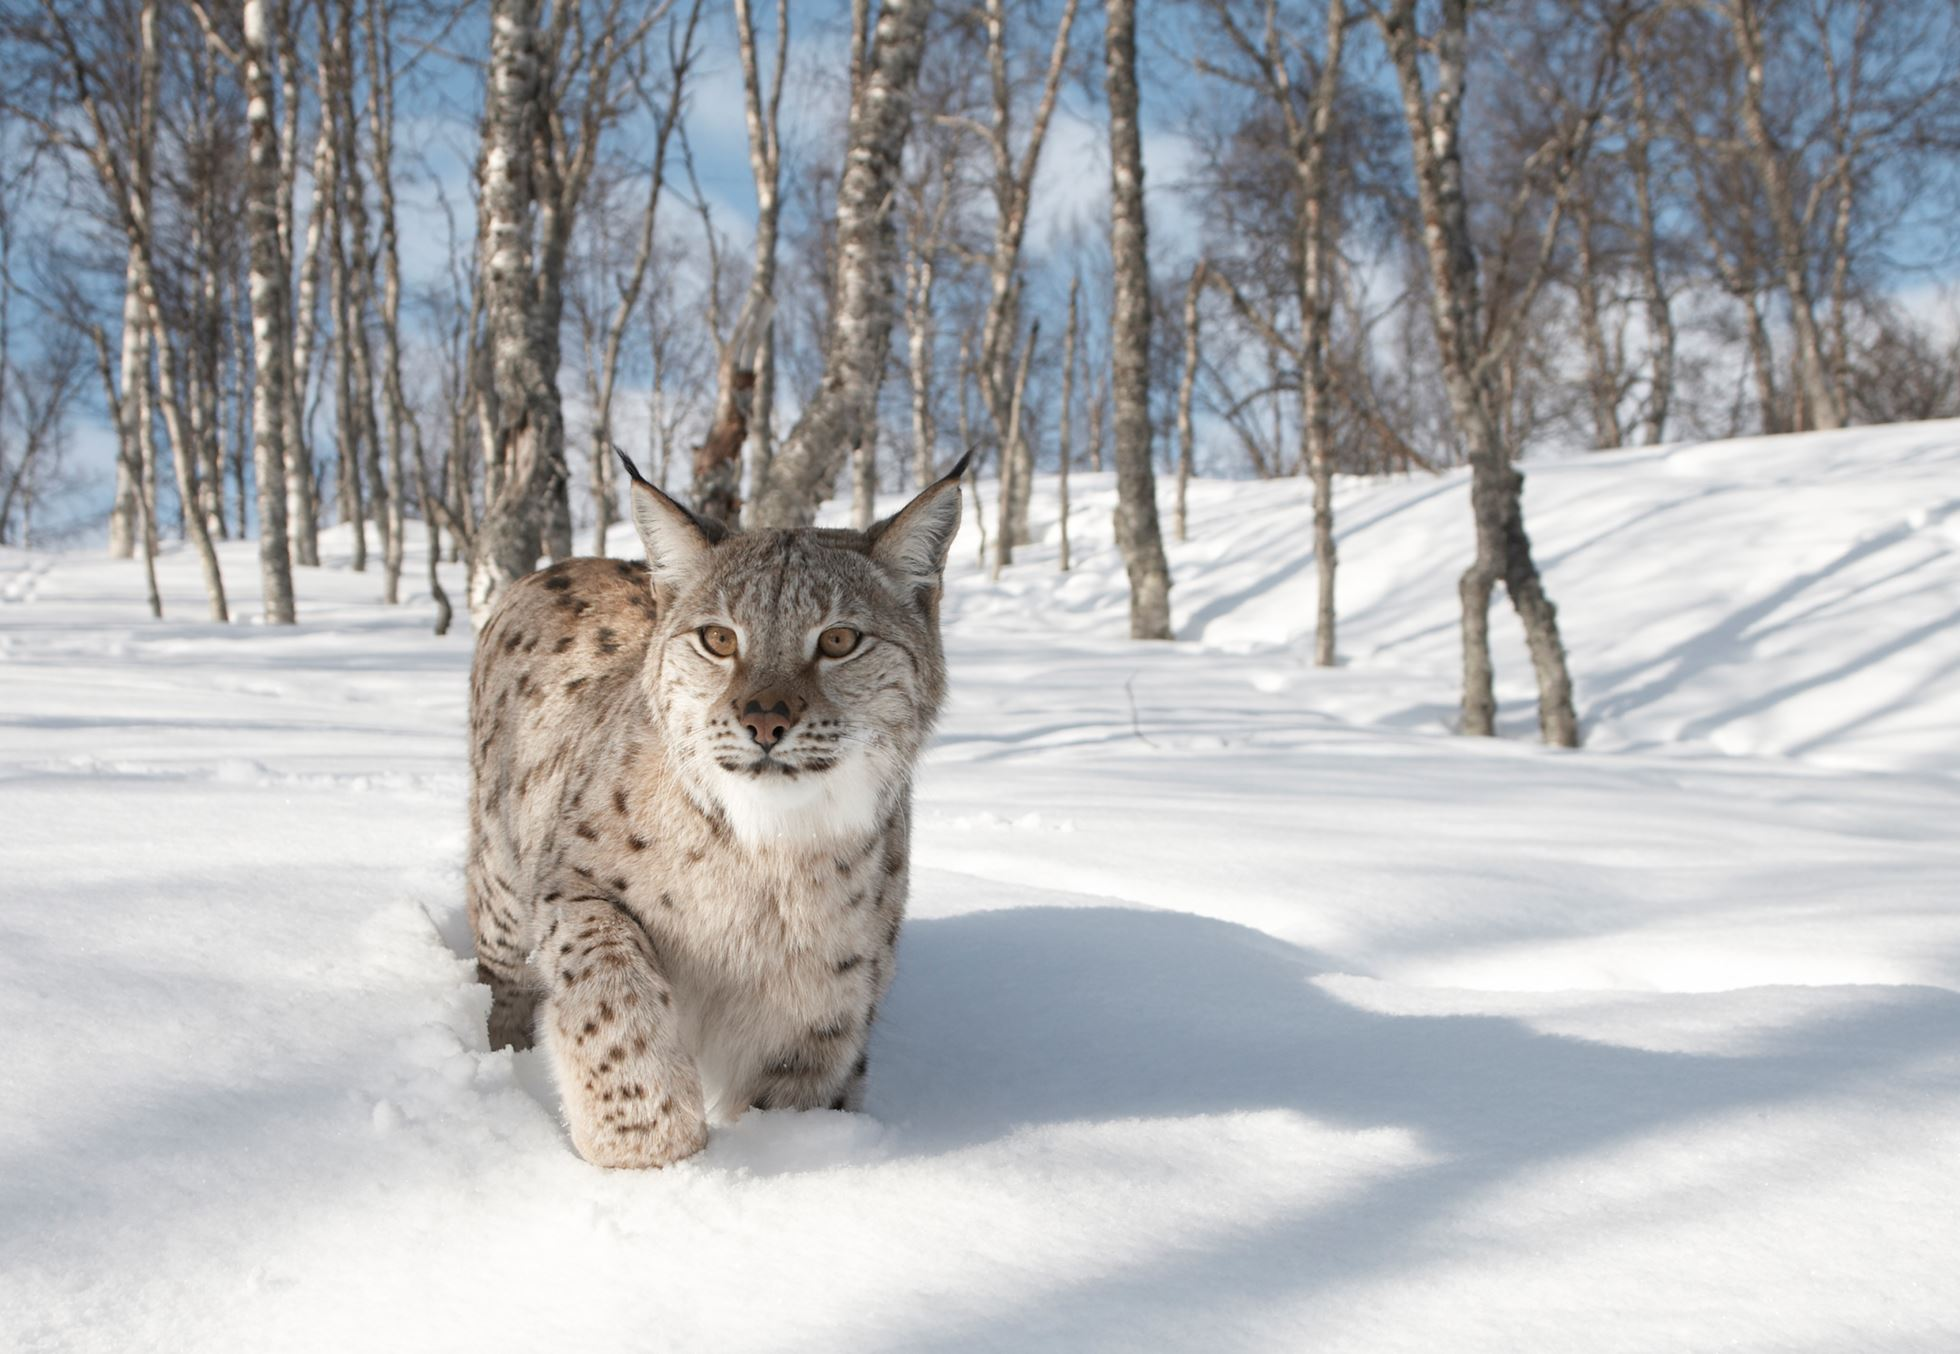 European Lynx (Lynx lynx) adult female in winter birch forest, Bardu, Norway (c)